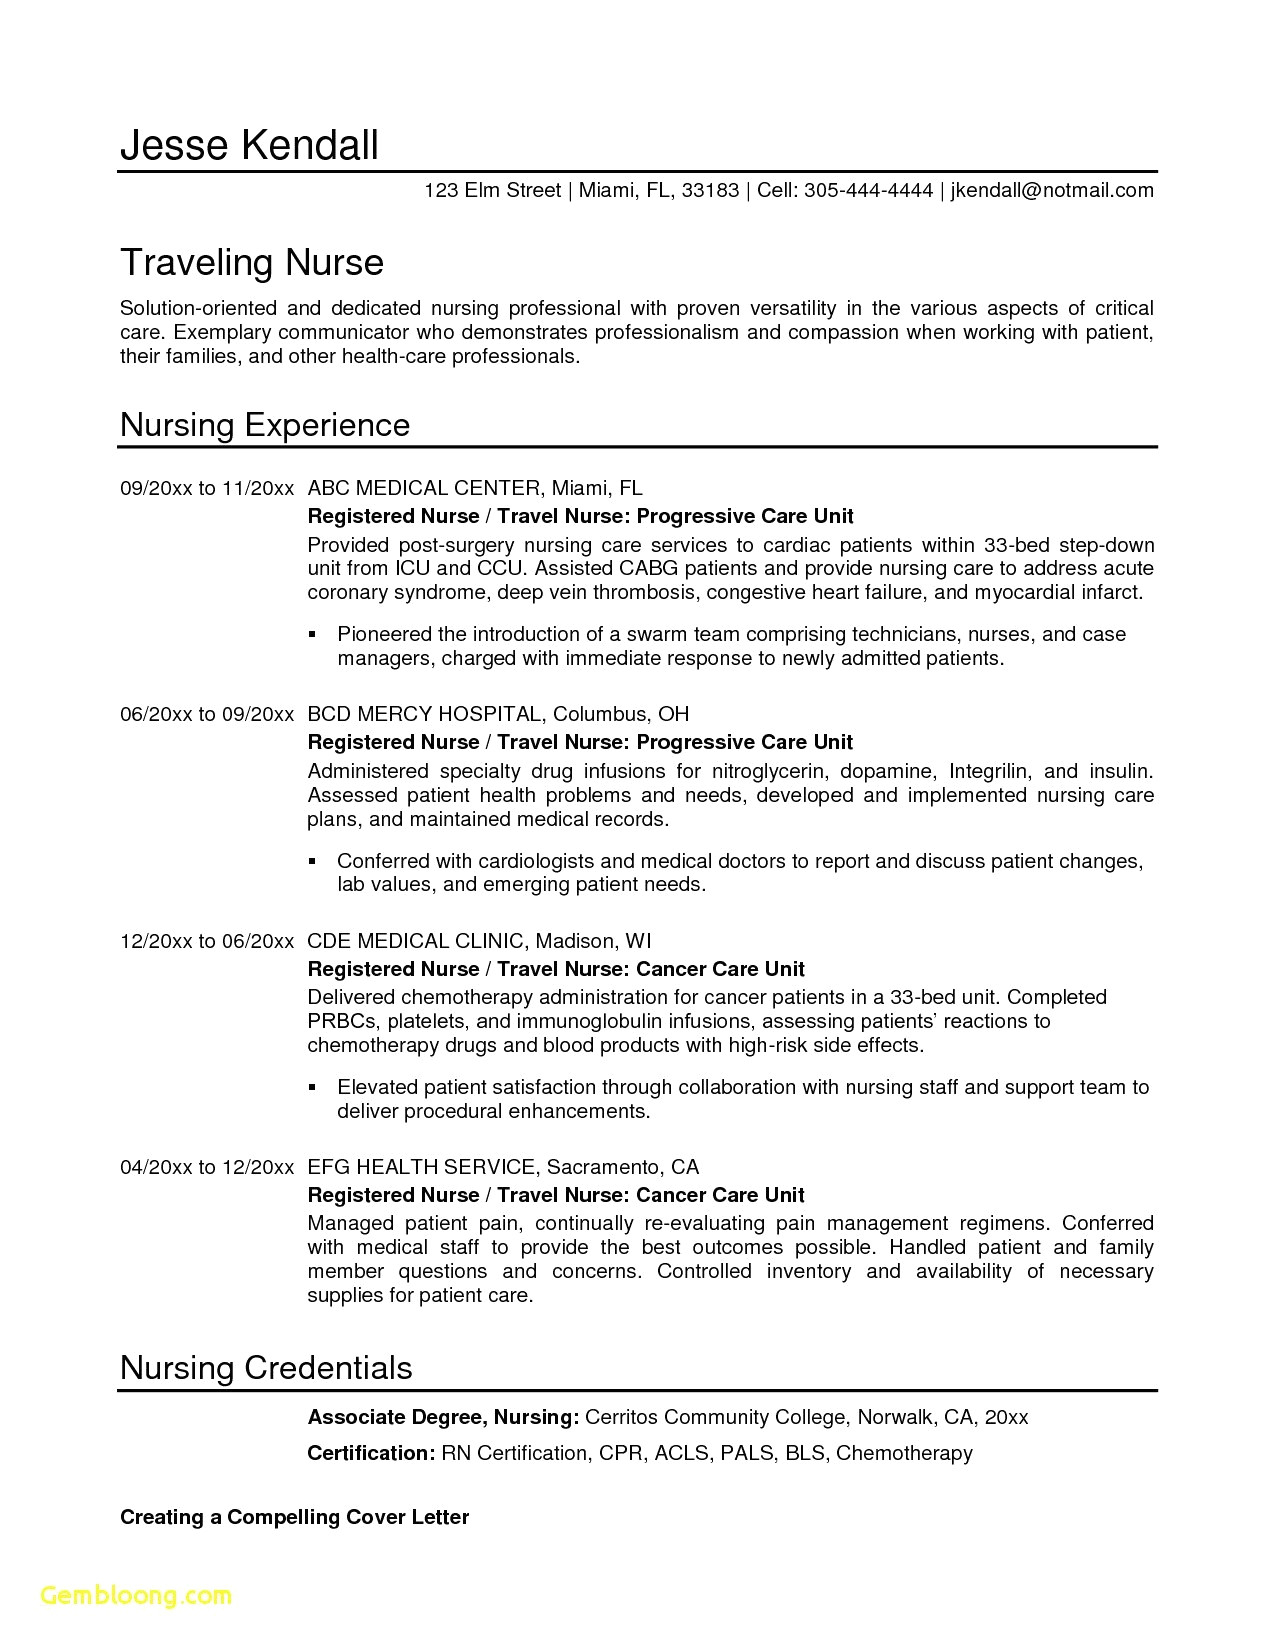 Resume Writing Template - 60 Design Resume Writing Certification